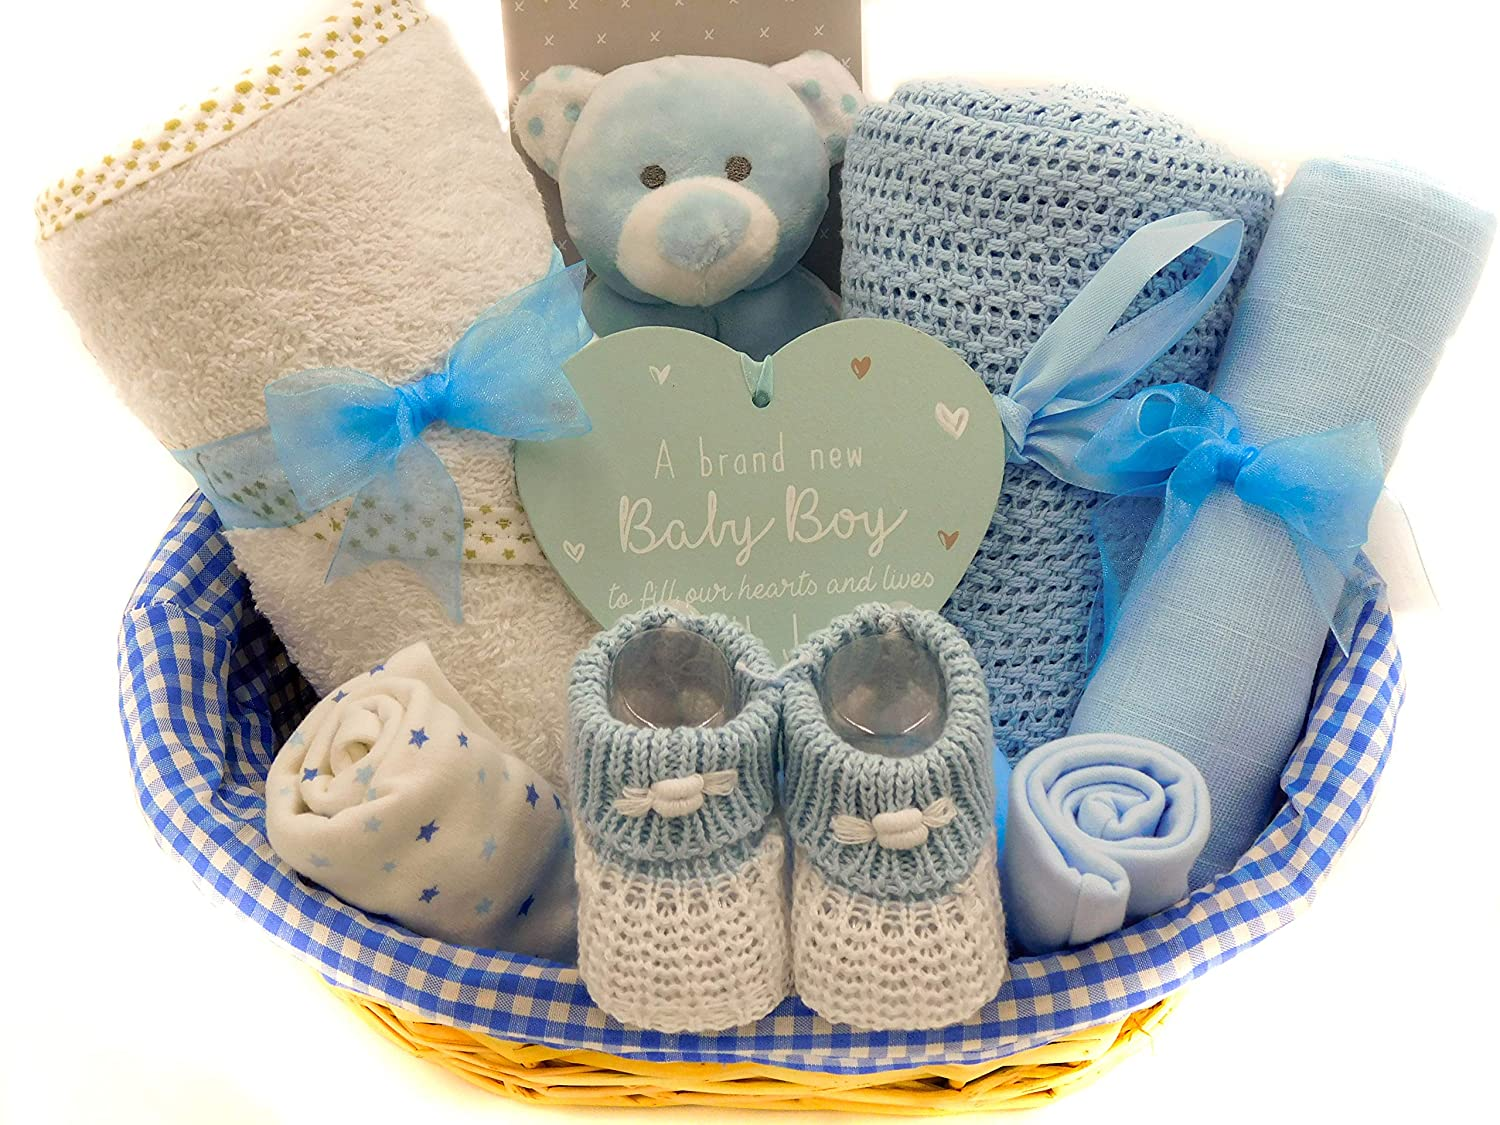 b123e983eccca Newborn Baby Boy Gift Hamper Basket, Blue, Free Delivery